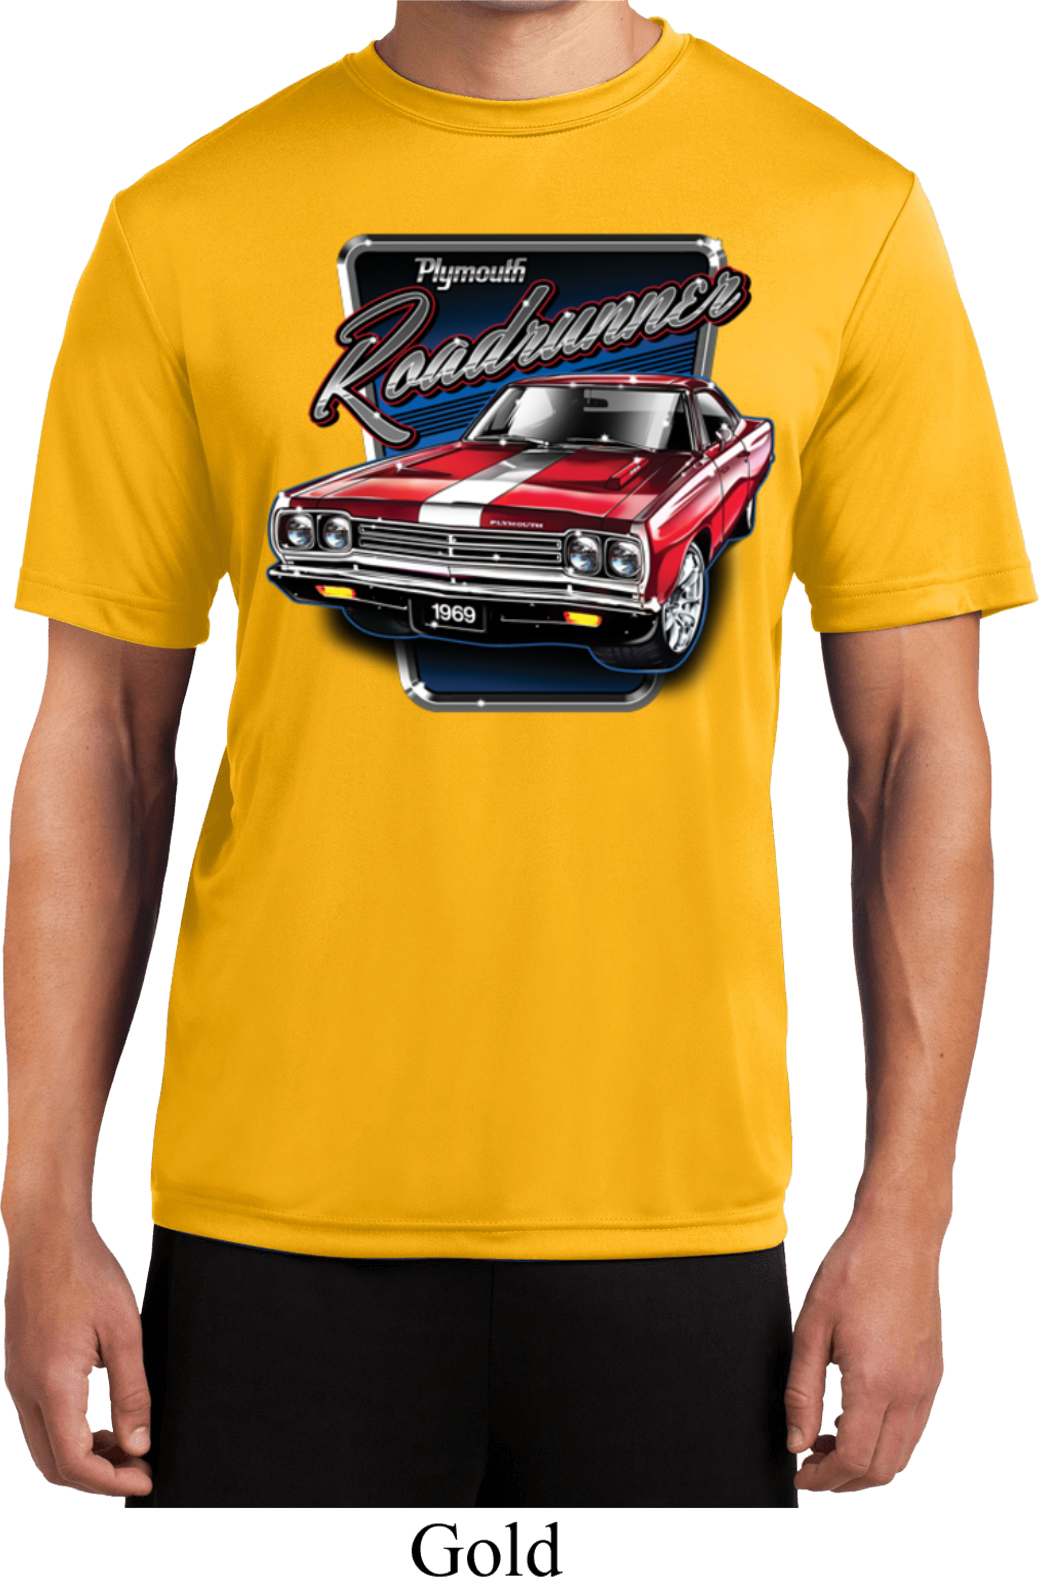 Mens dodge shirt plymouth roadrunner moisture wicking tee for Sweat wicking t shirts